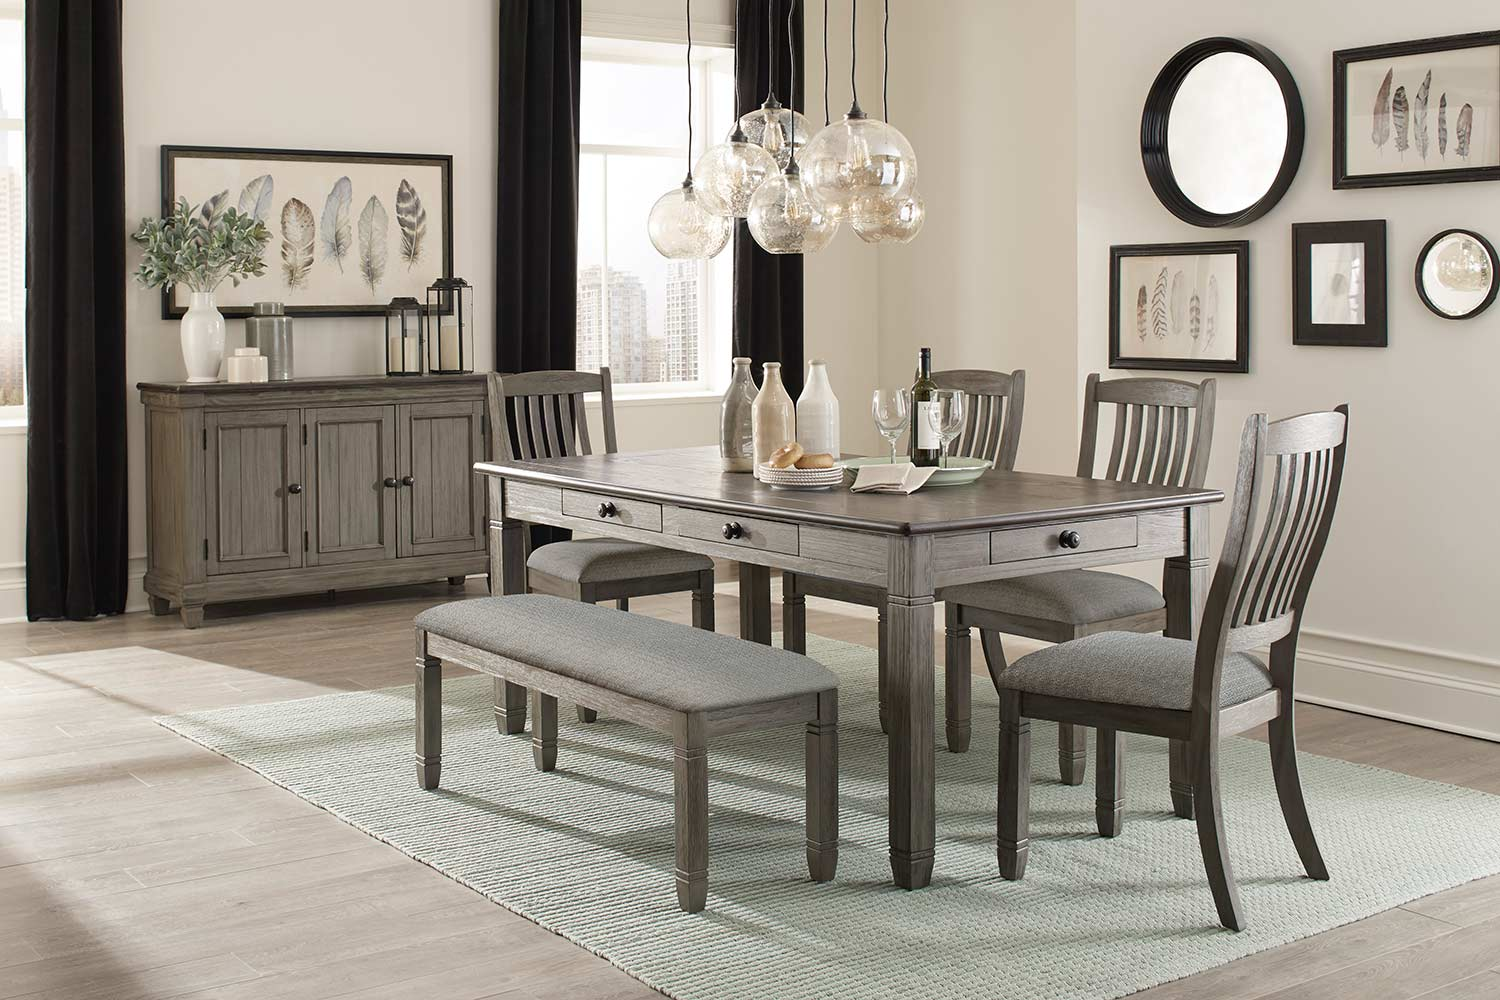 Homelegance Granby Dining Set - Antique Gray and Coffee